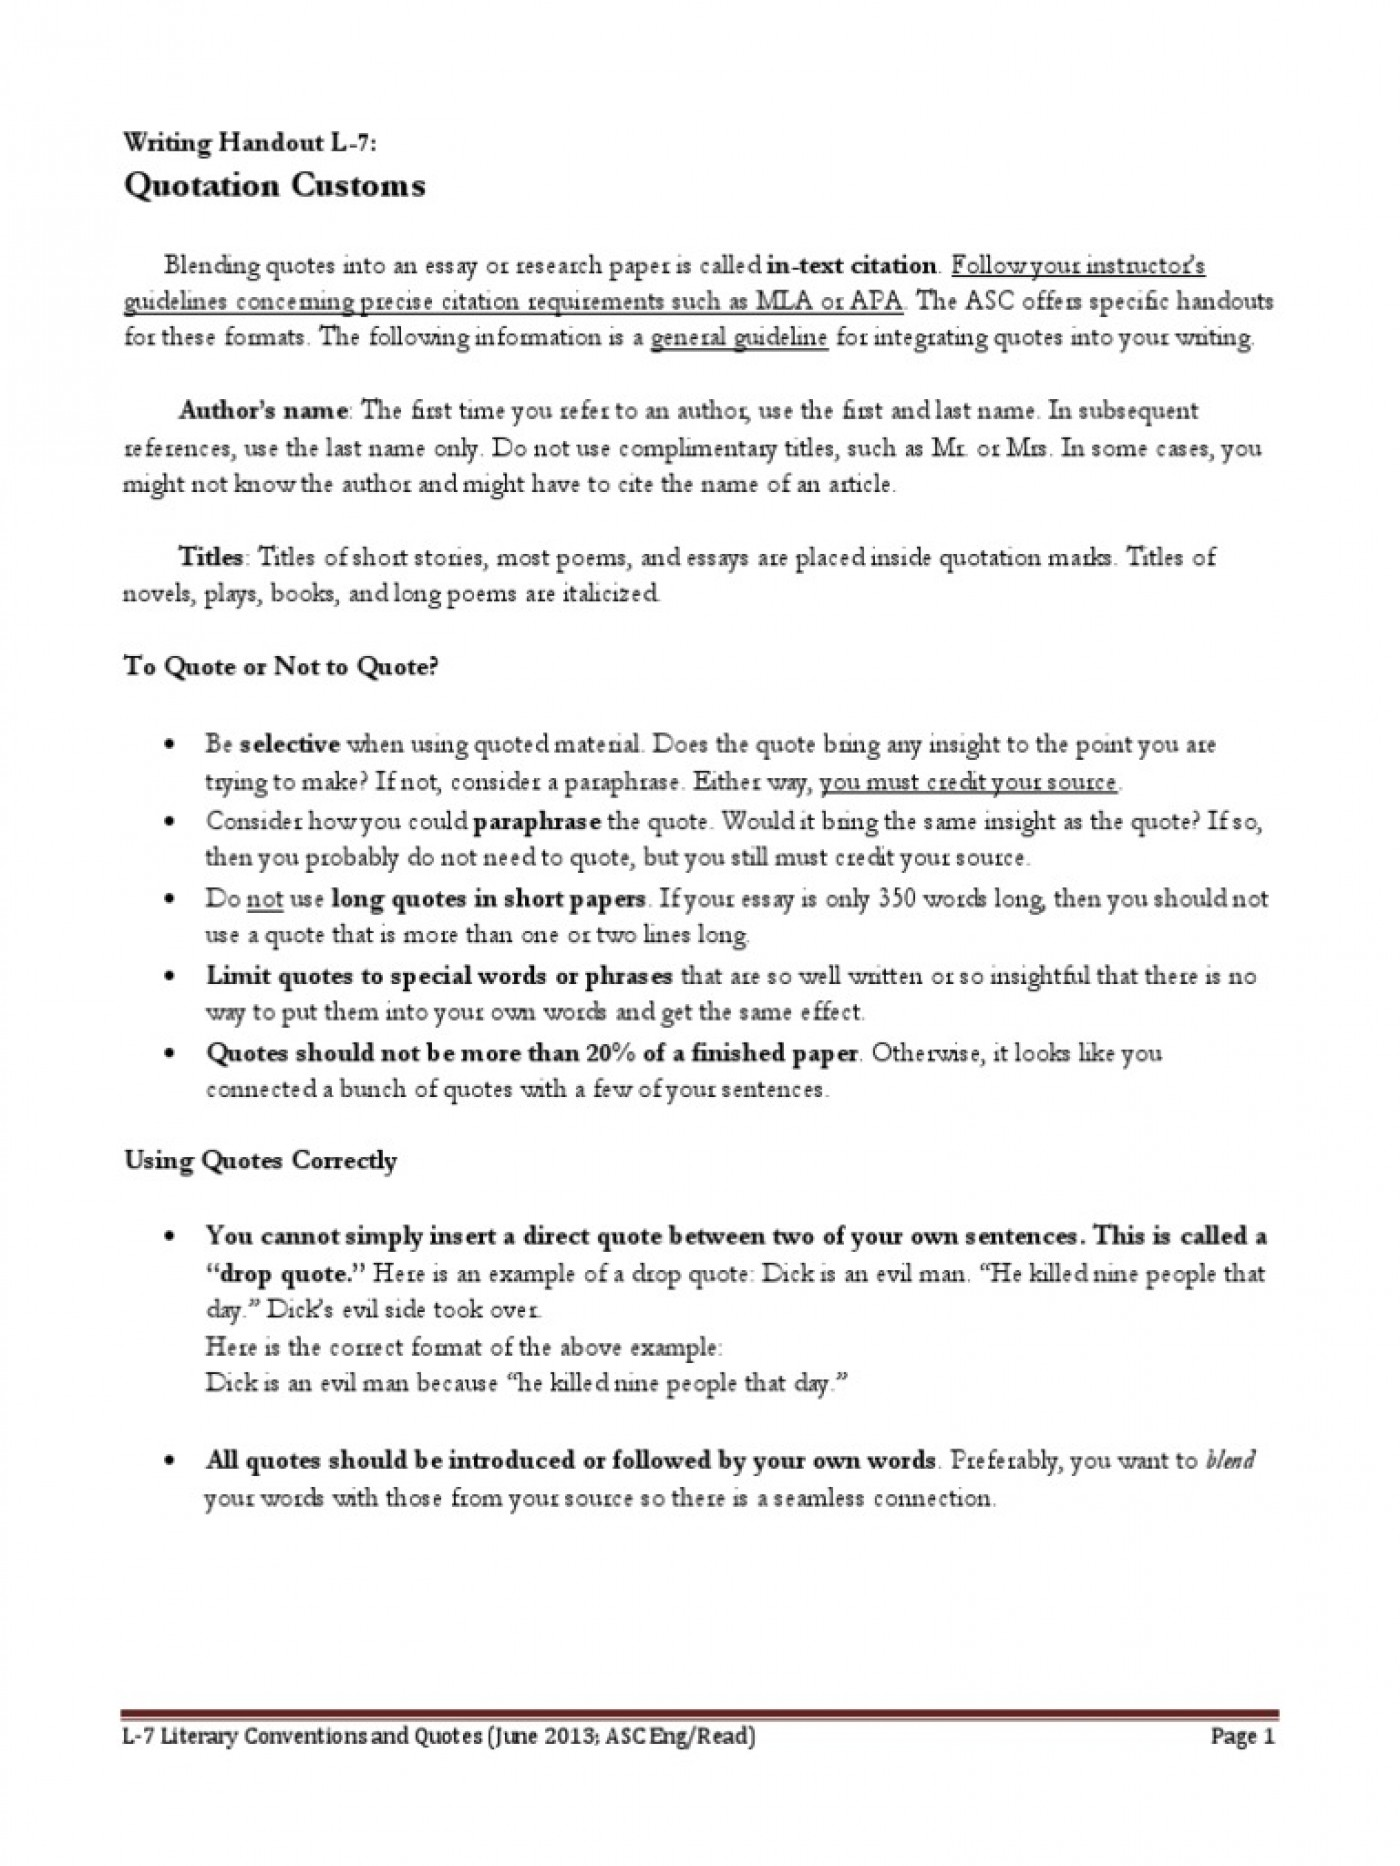 How To Quote A Dialogue In An Essay | The Ultimate Guide